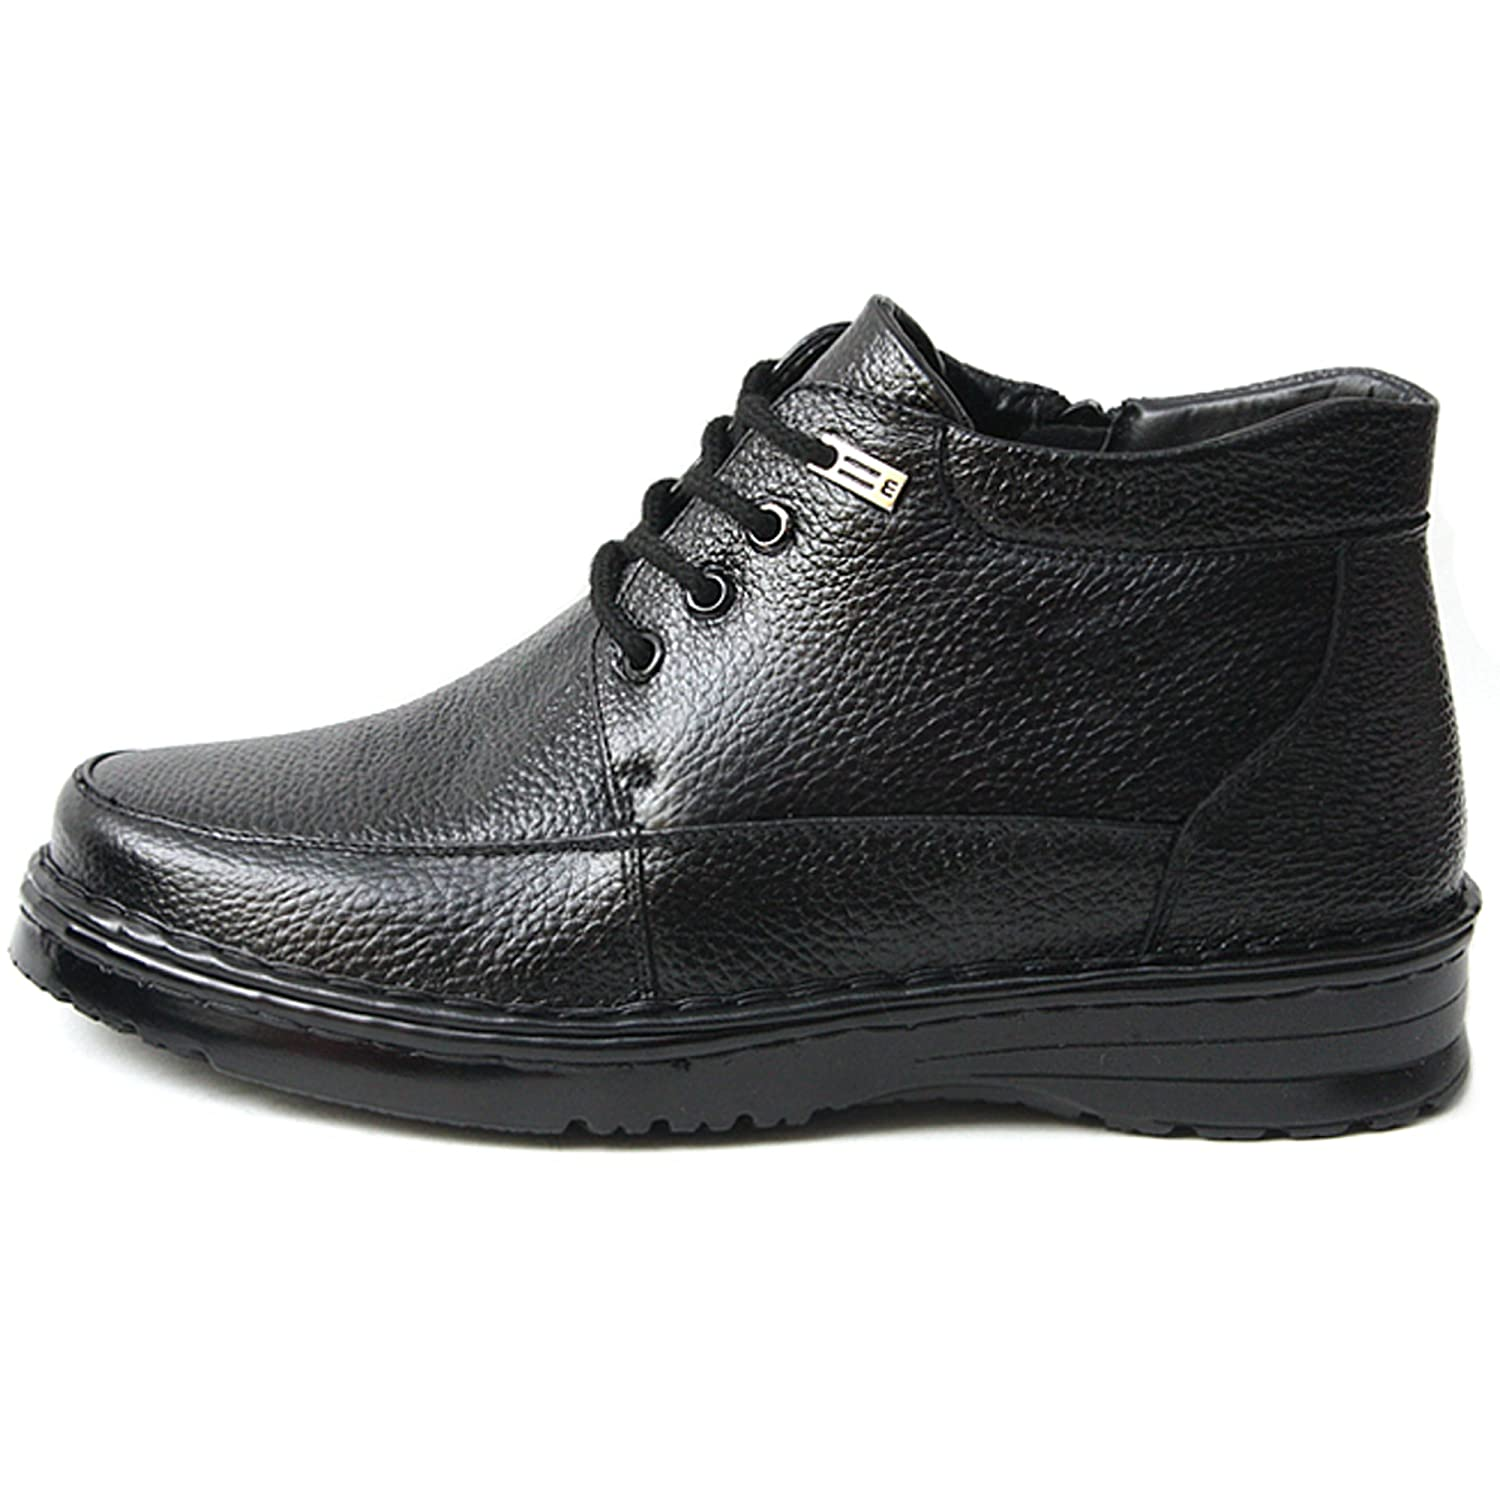 New Mens Winter Snow Warm Dress Casual Ankle Zip Lace up Leather Boots Shoes